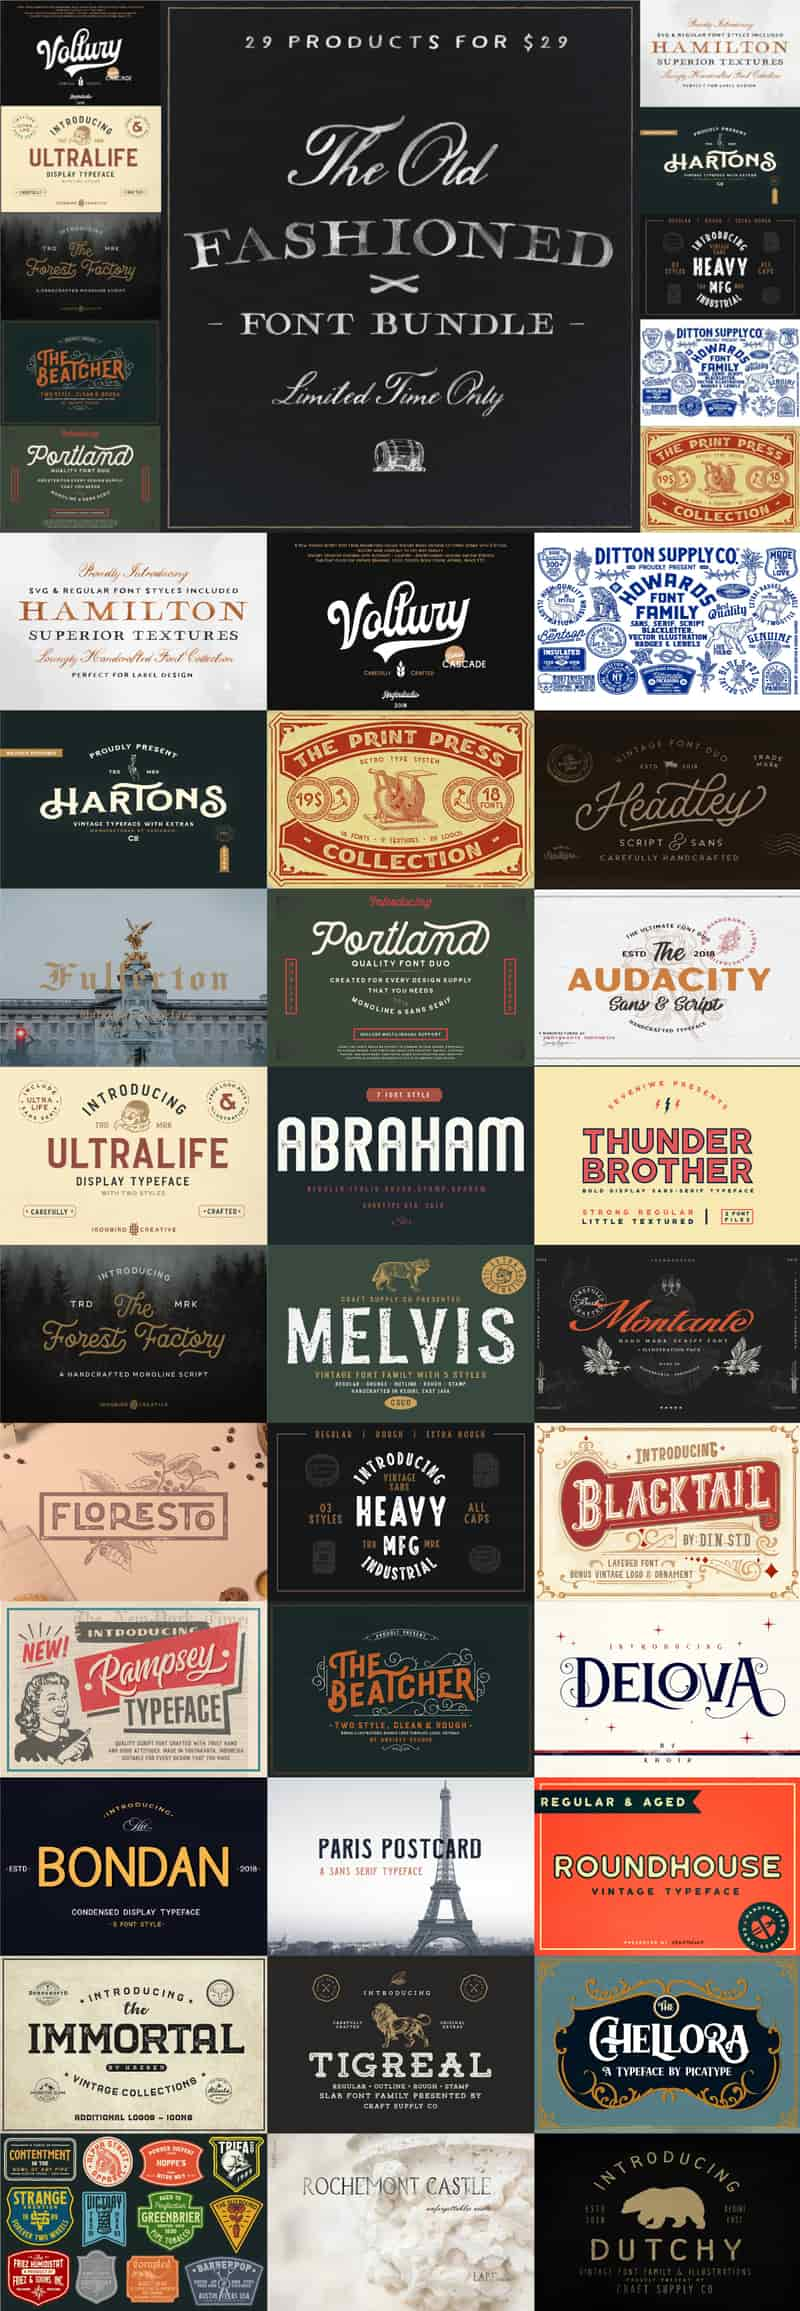 The Old Fashioned Font Bundle